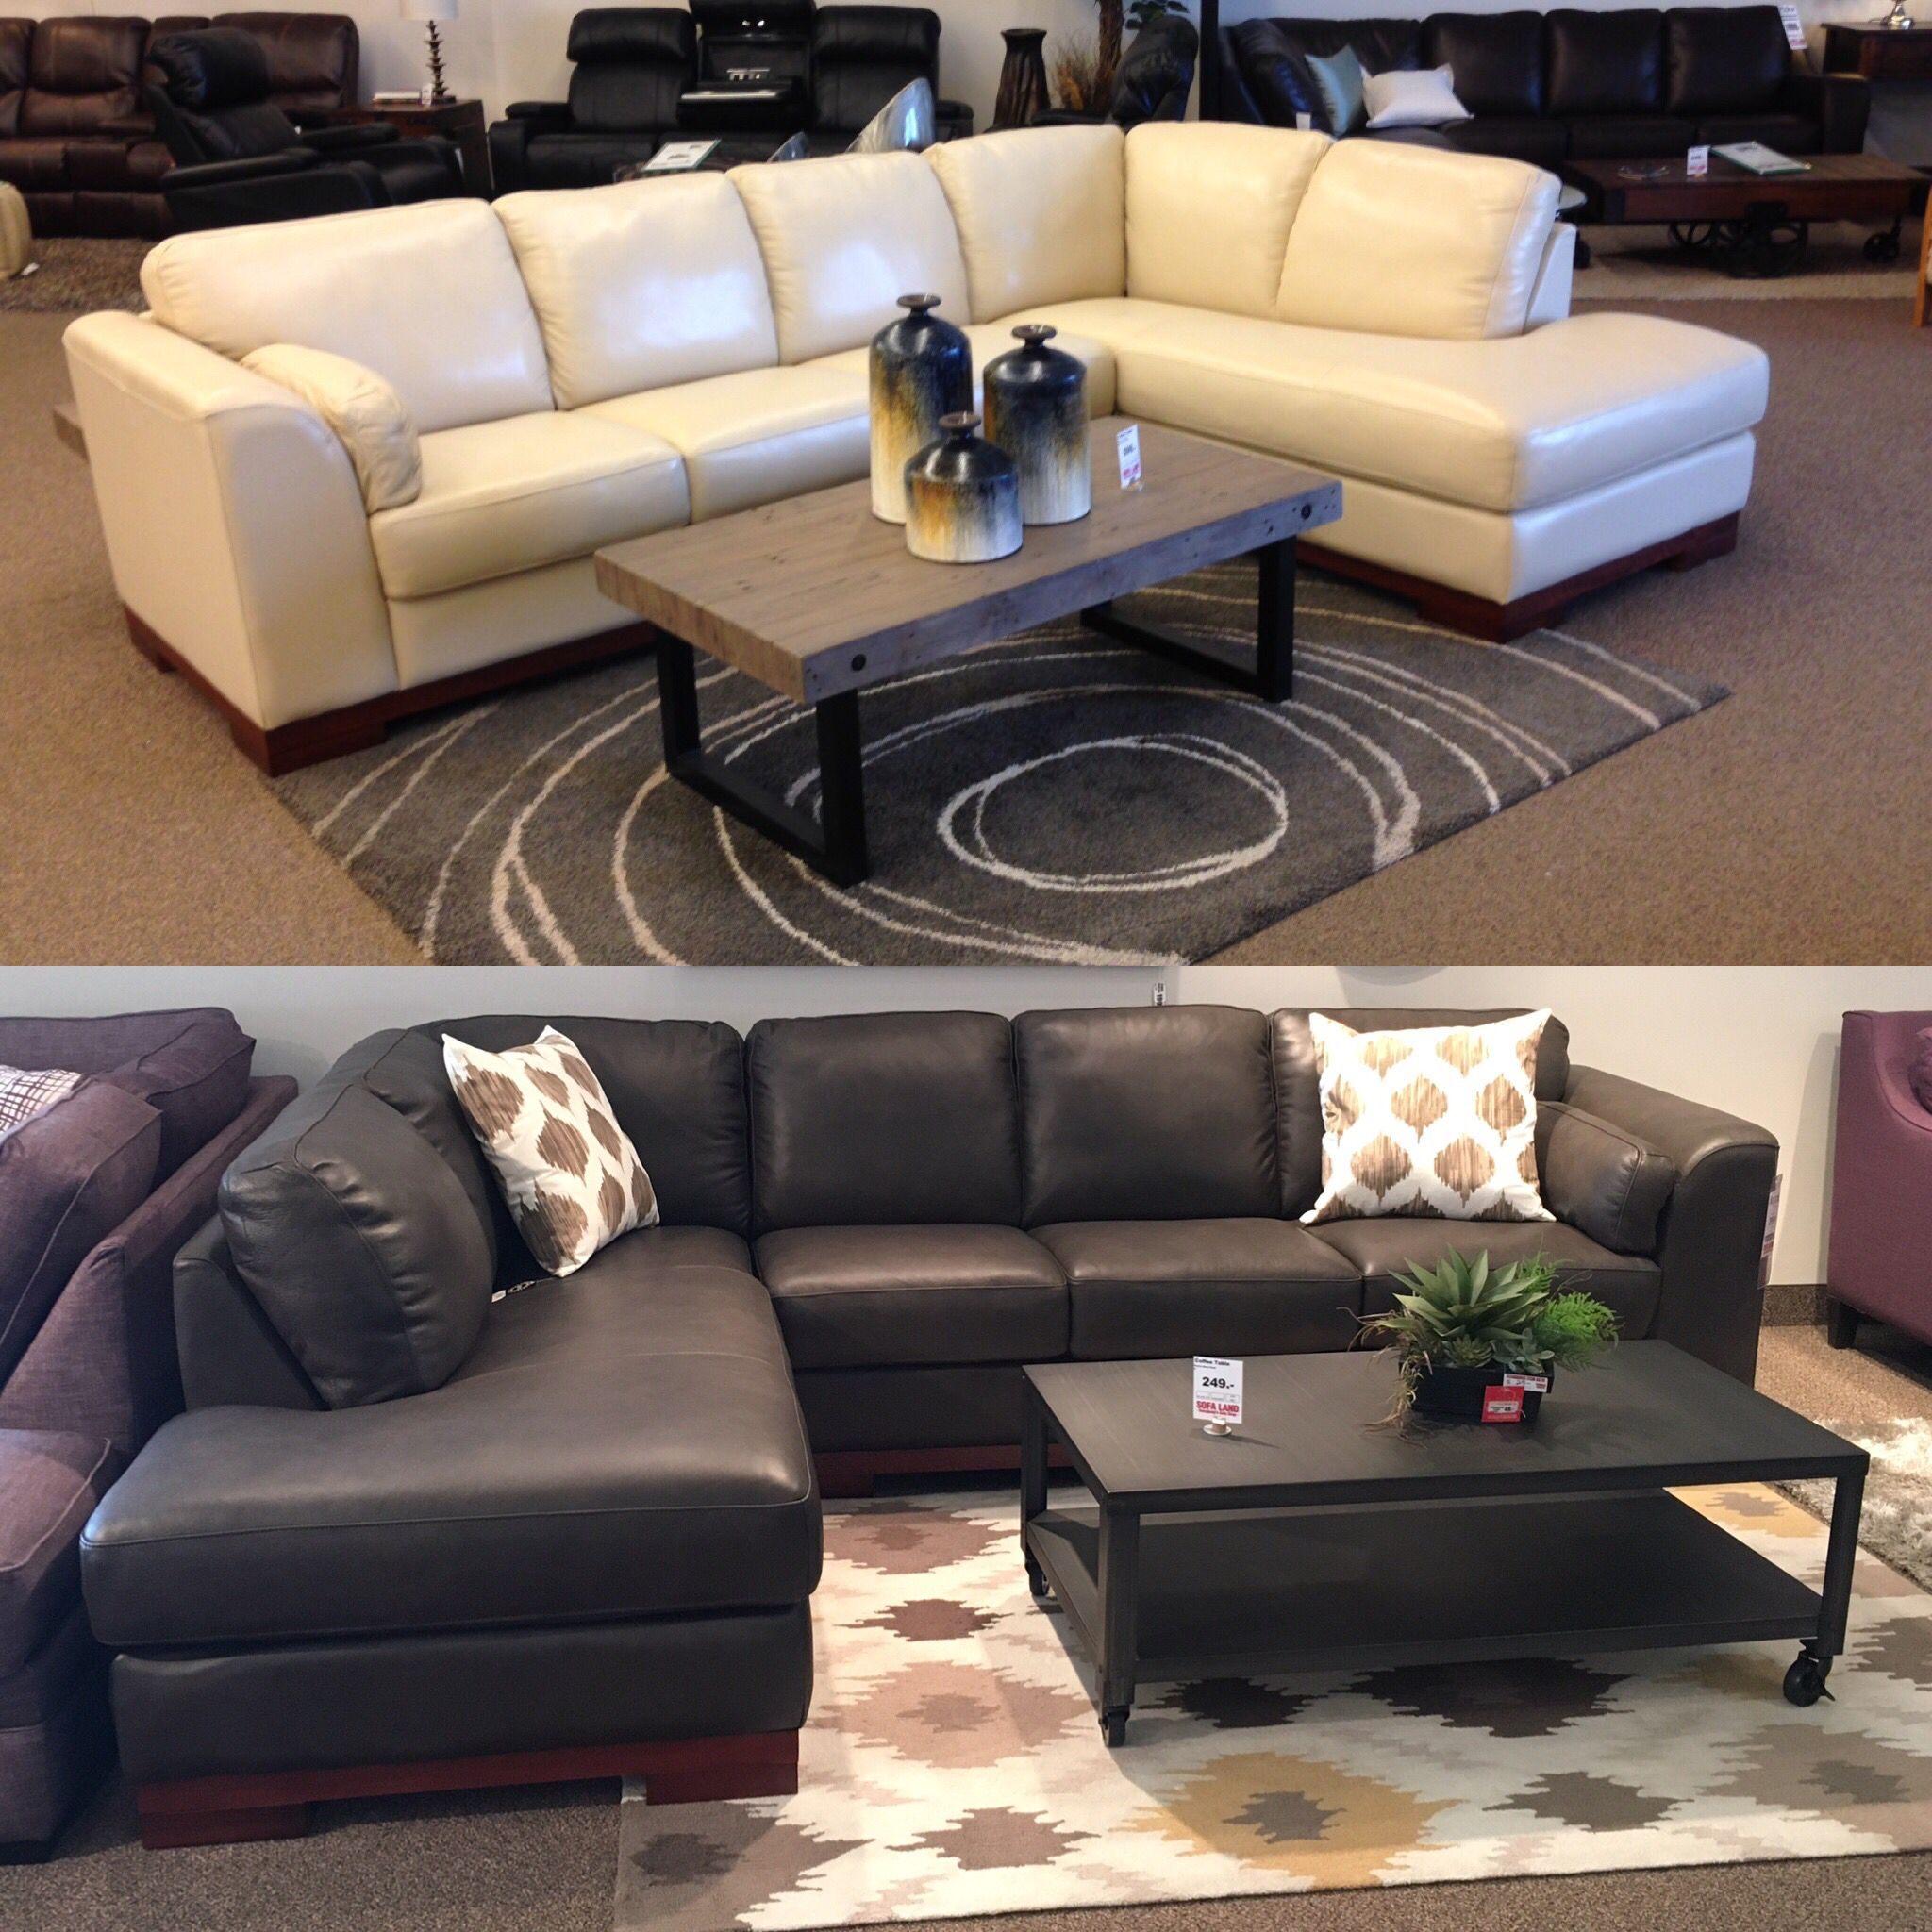 Special Purchase On Our Farrah Sectional While Supplies Last 2 Colors Available With The Chaise On The Left Or On The Right Furniture Interior Design Home